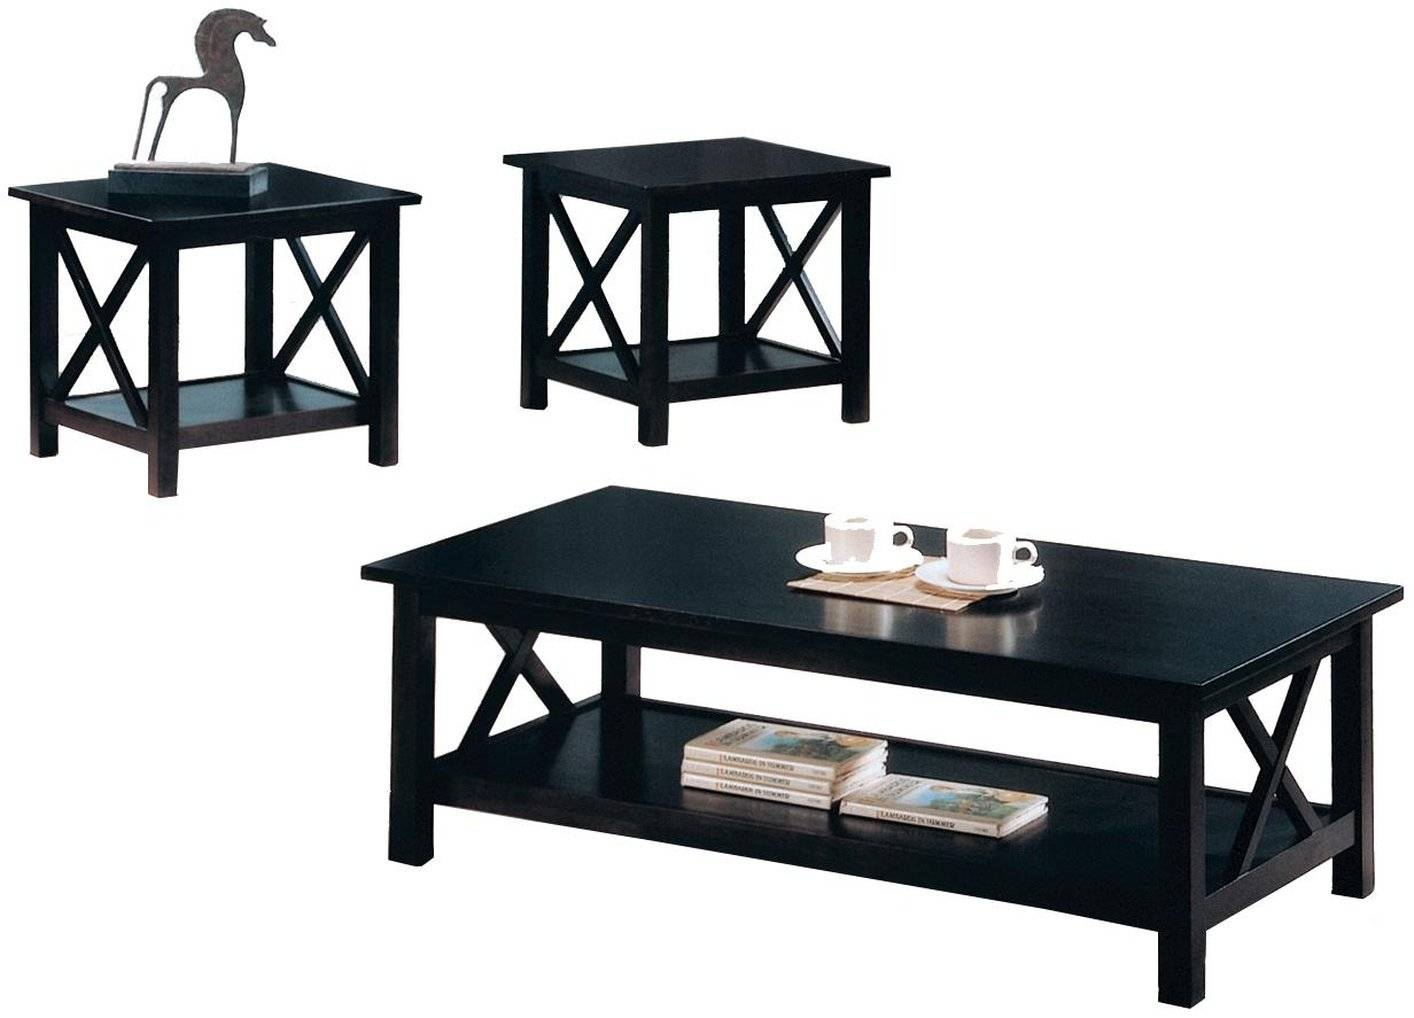 Black Wood Coffee Table Set - Steal-A-Sofa Furniture Outlet Los regarding Black Wood Coffee Tables (Image 3 of 30)